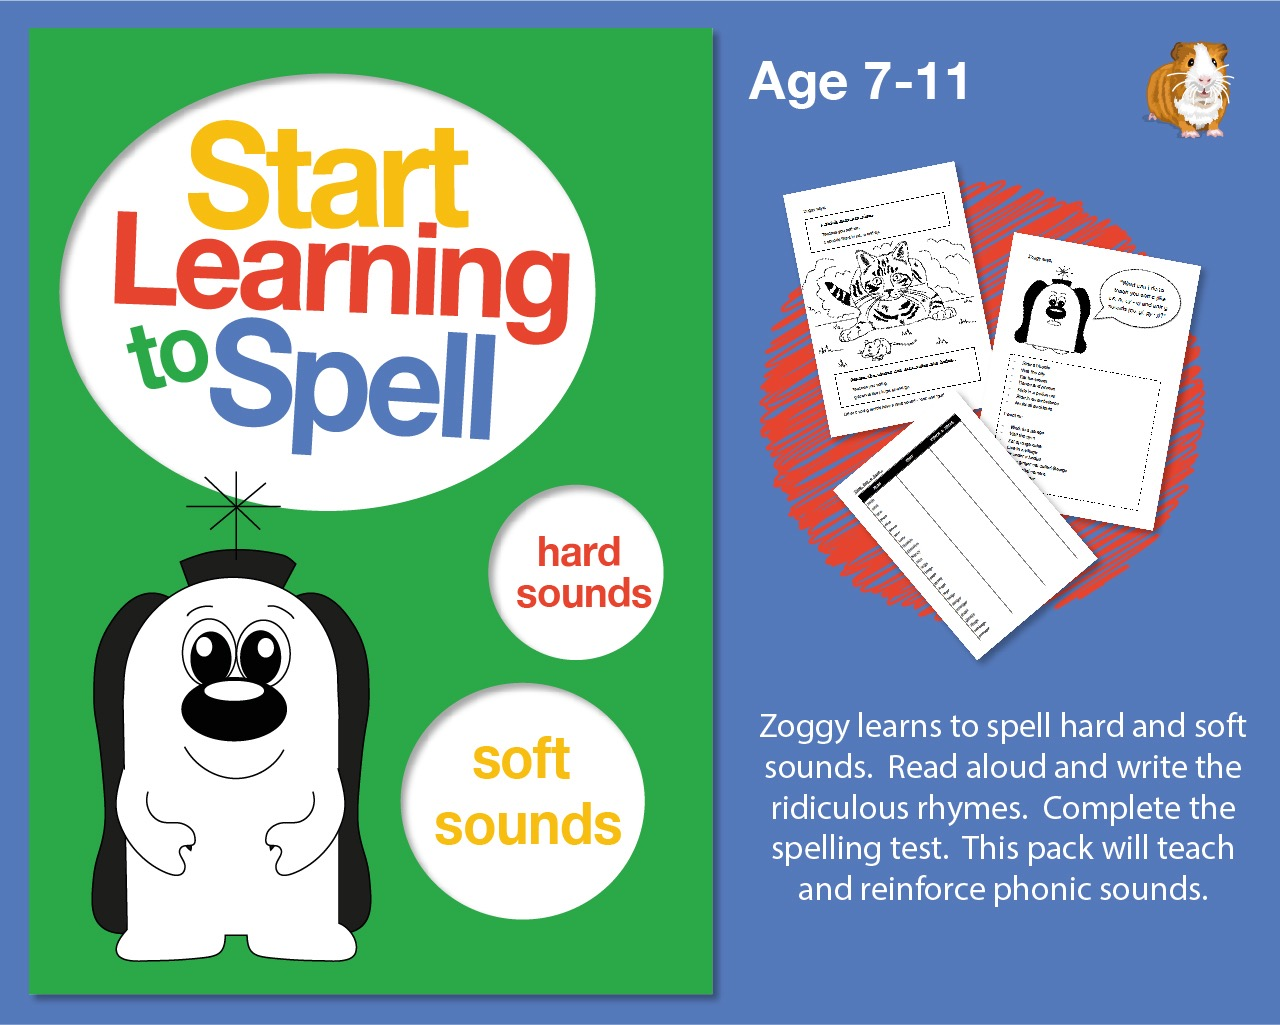 Zoggy Learns To Spell Hard And Soft Sounds: Learn To Spell With Phonics (7-11)